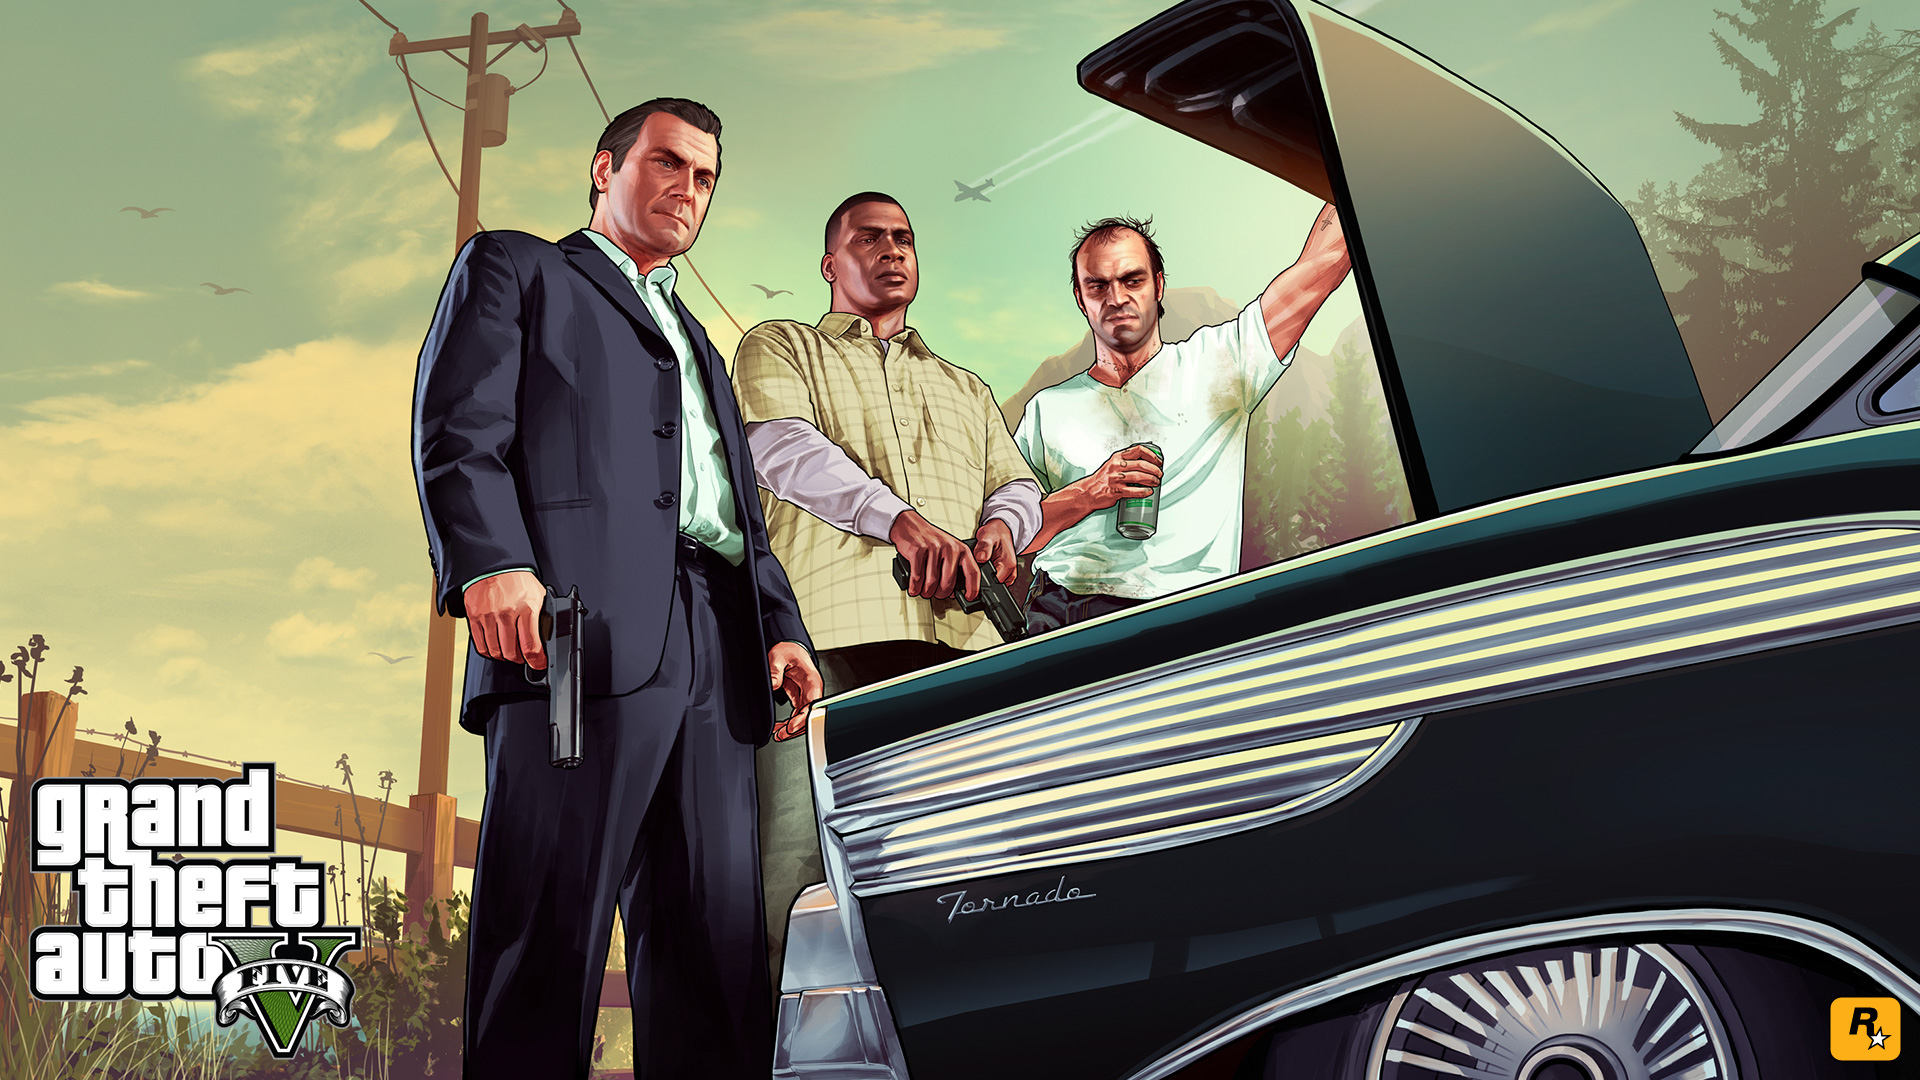 gta 5 wallpaper – greatest collection of grand theft auto v wallpapers